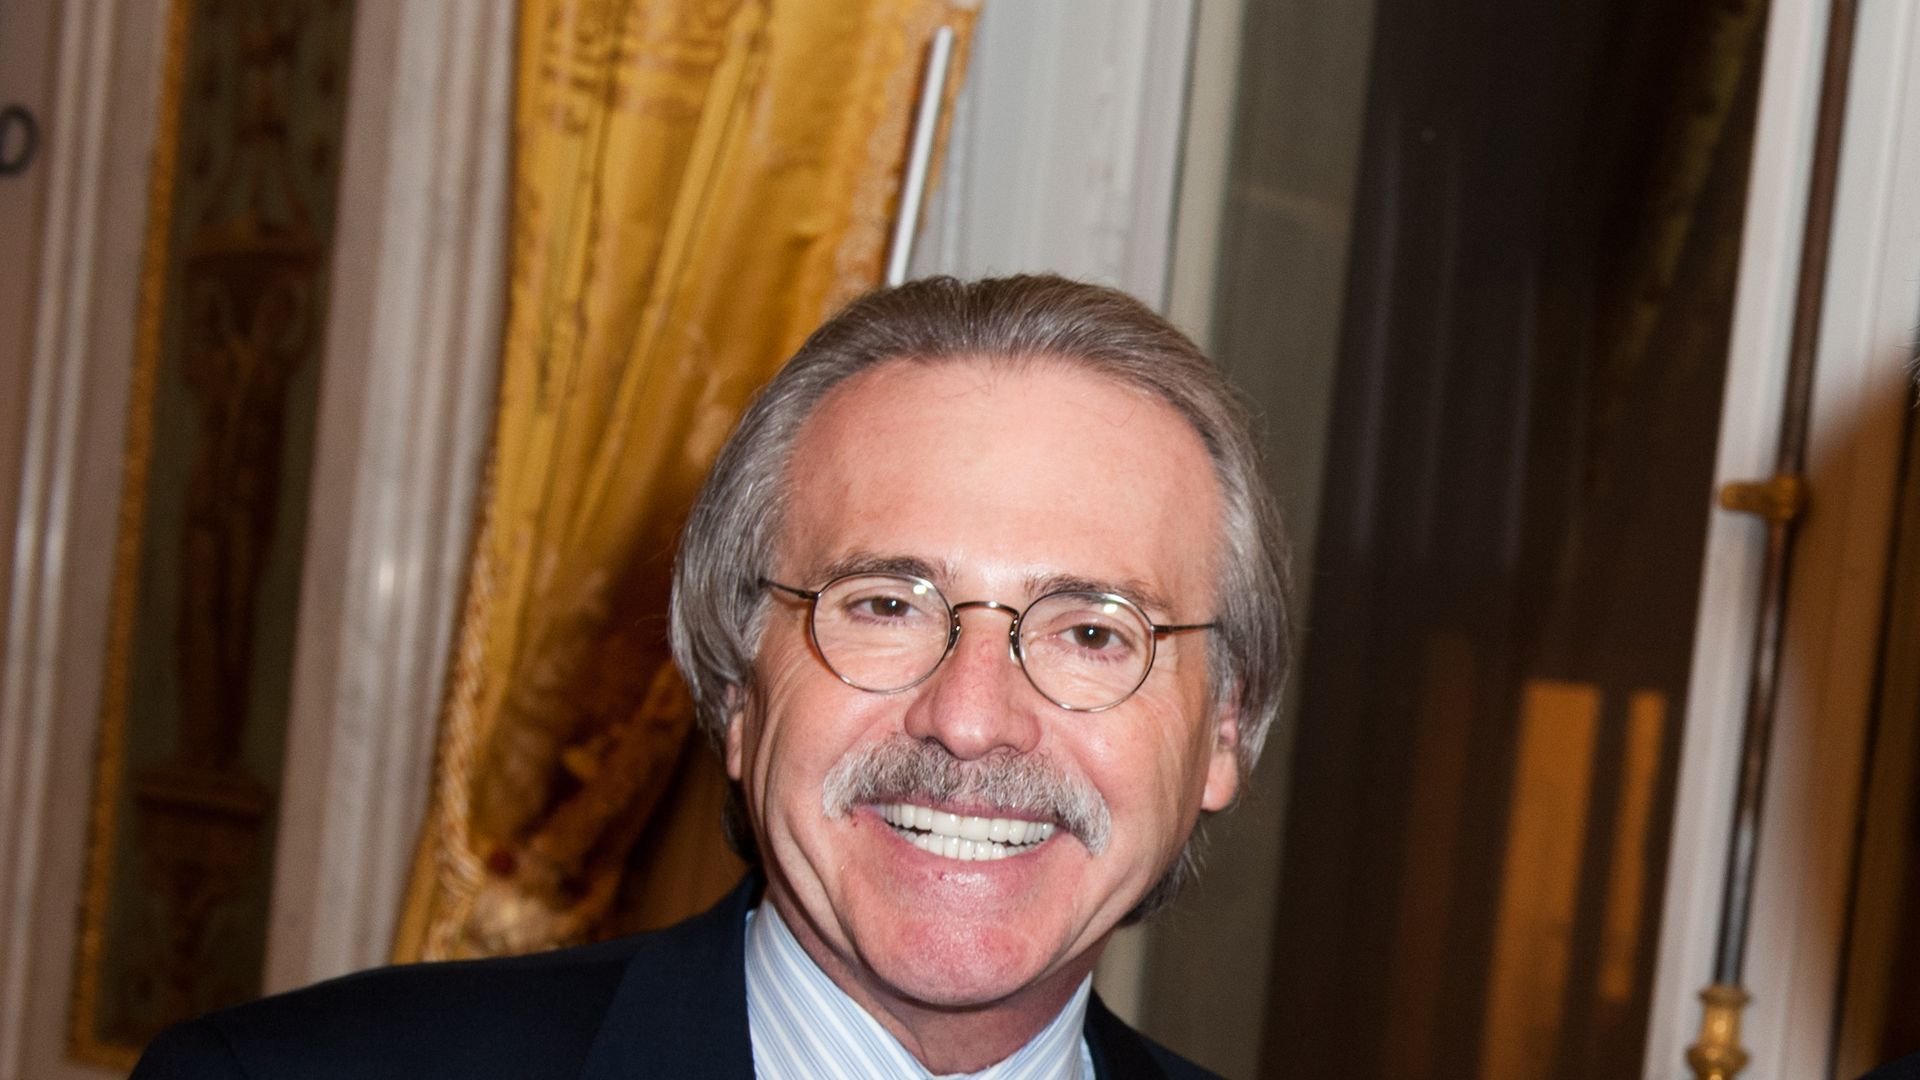 David Pecker smiles